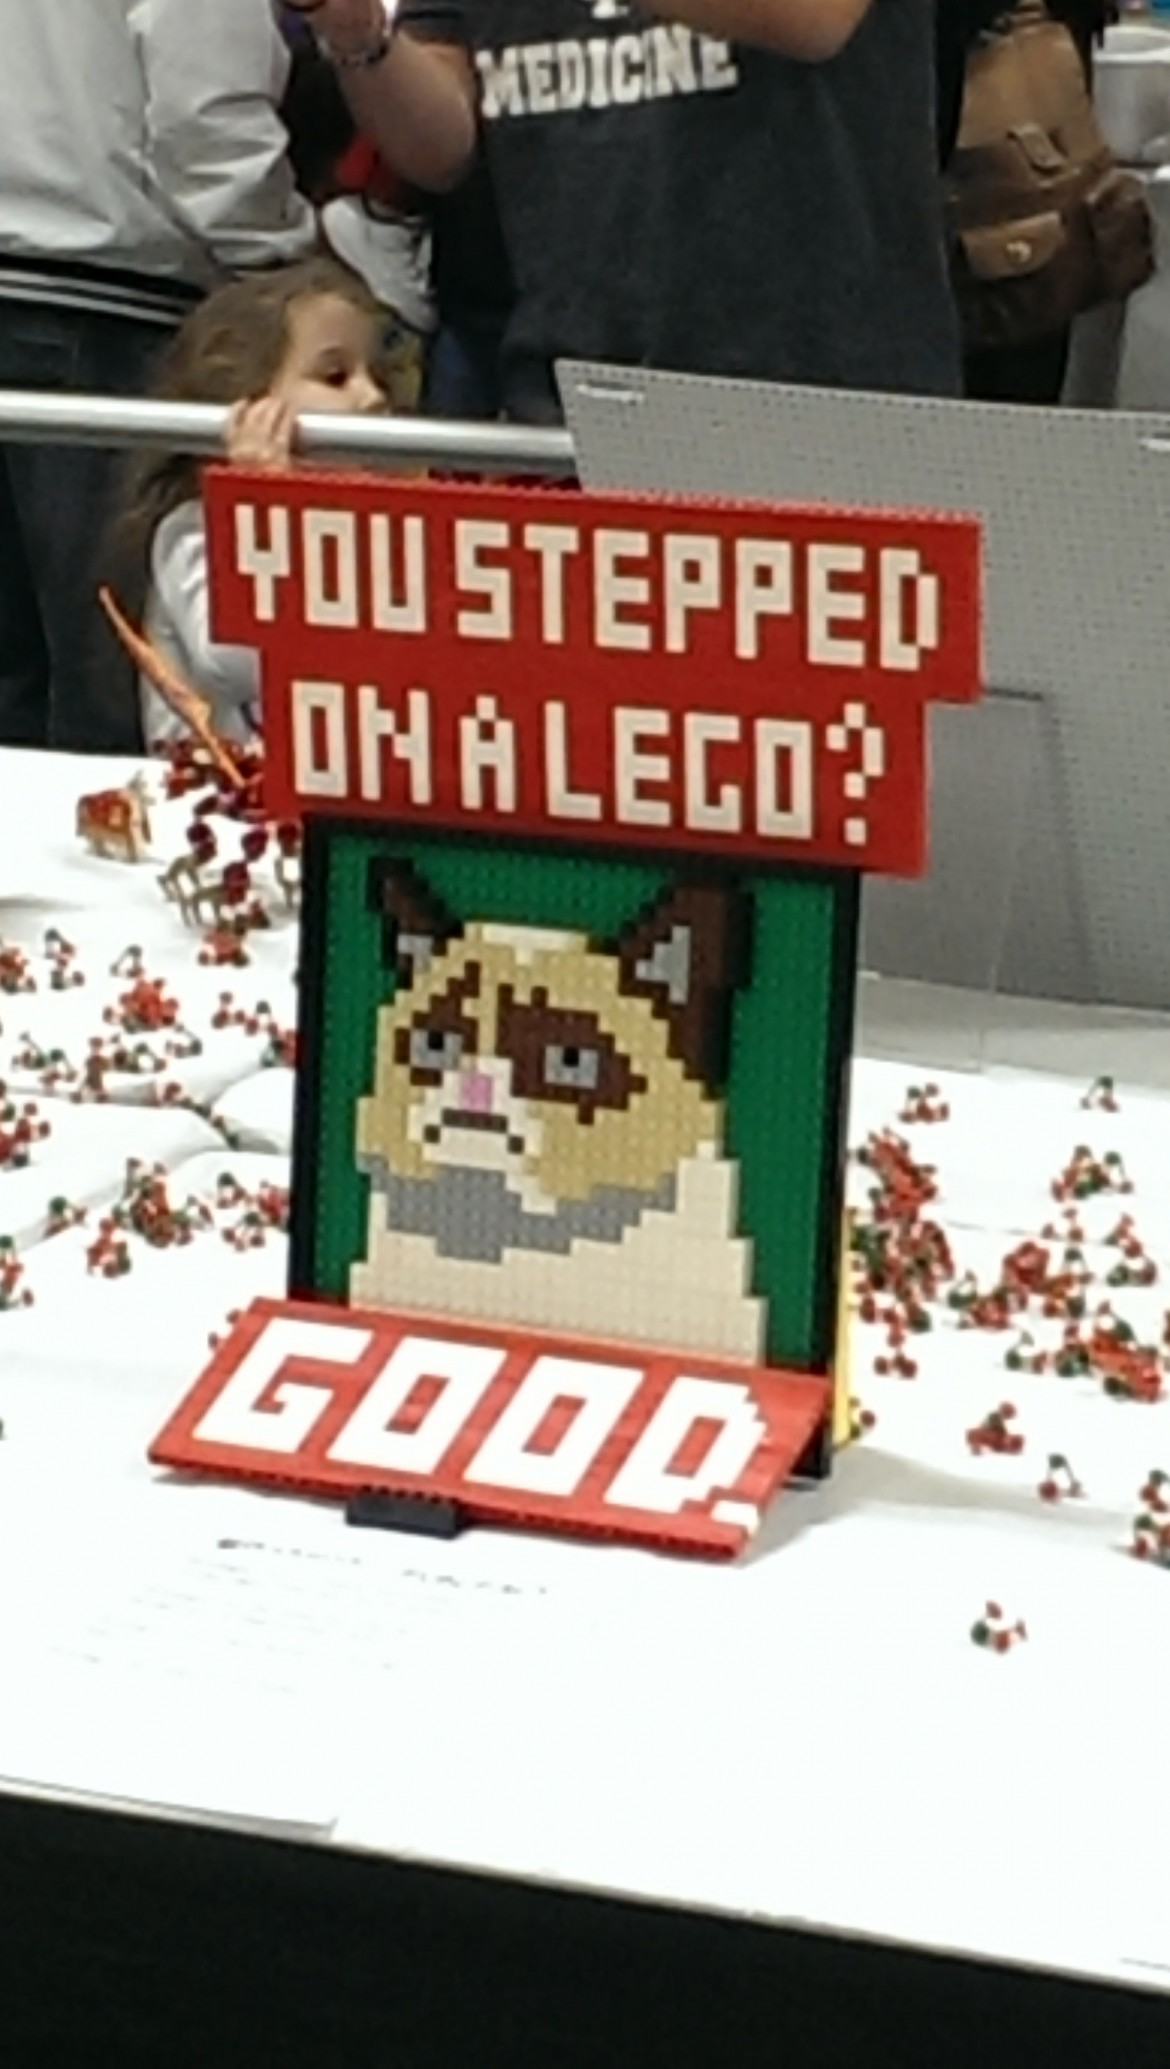 Saw this at the Lego expo today.